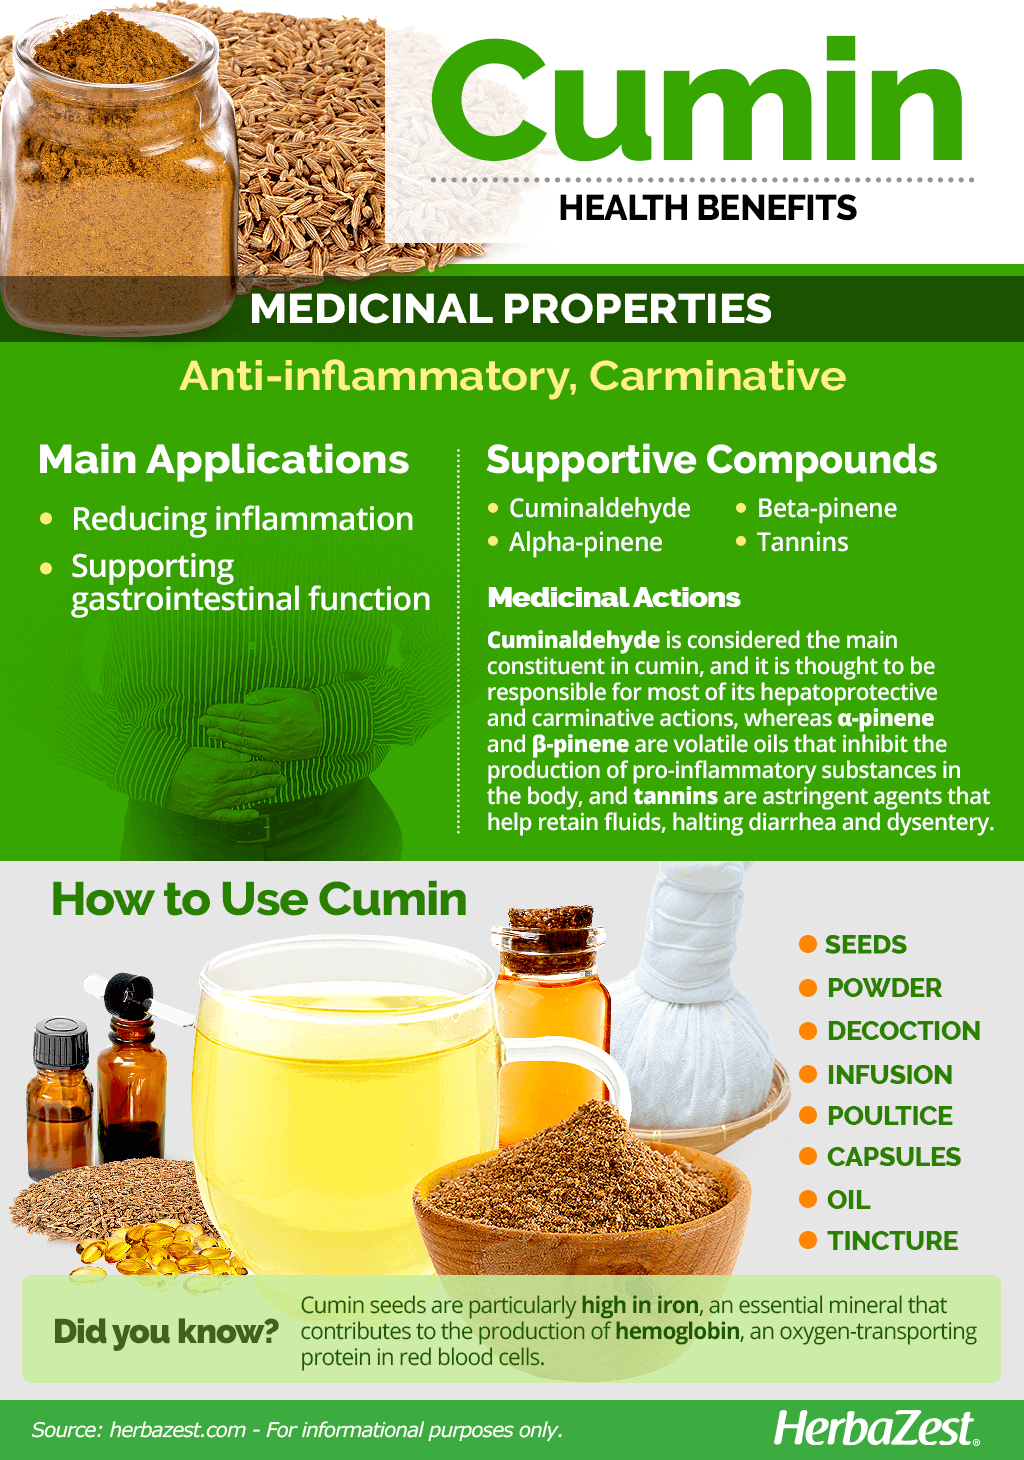 All About Cumin